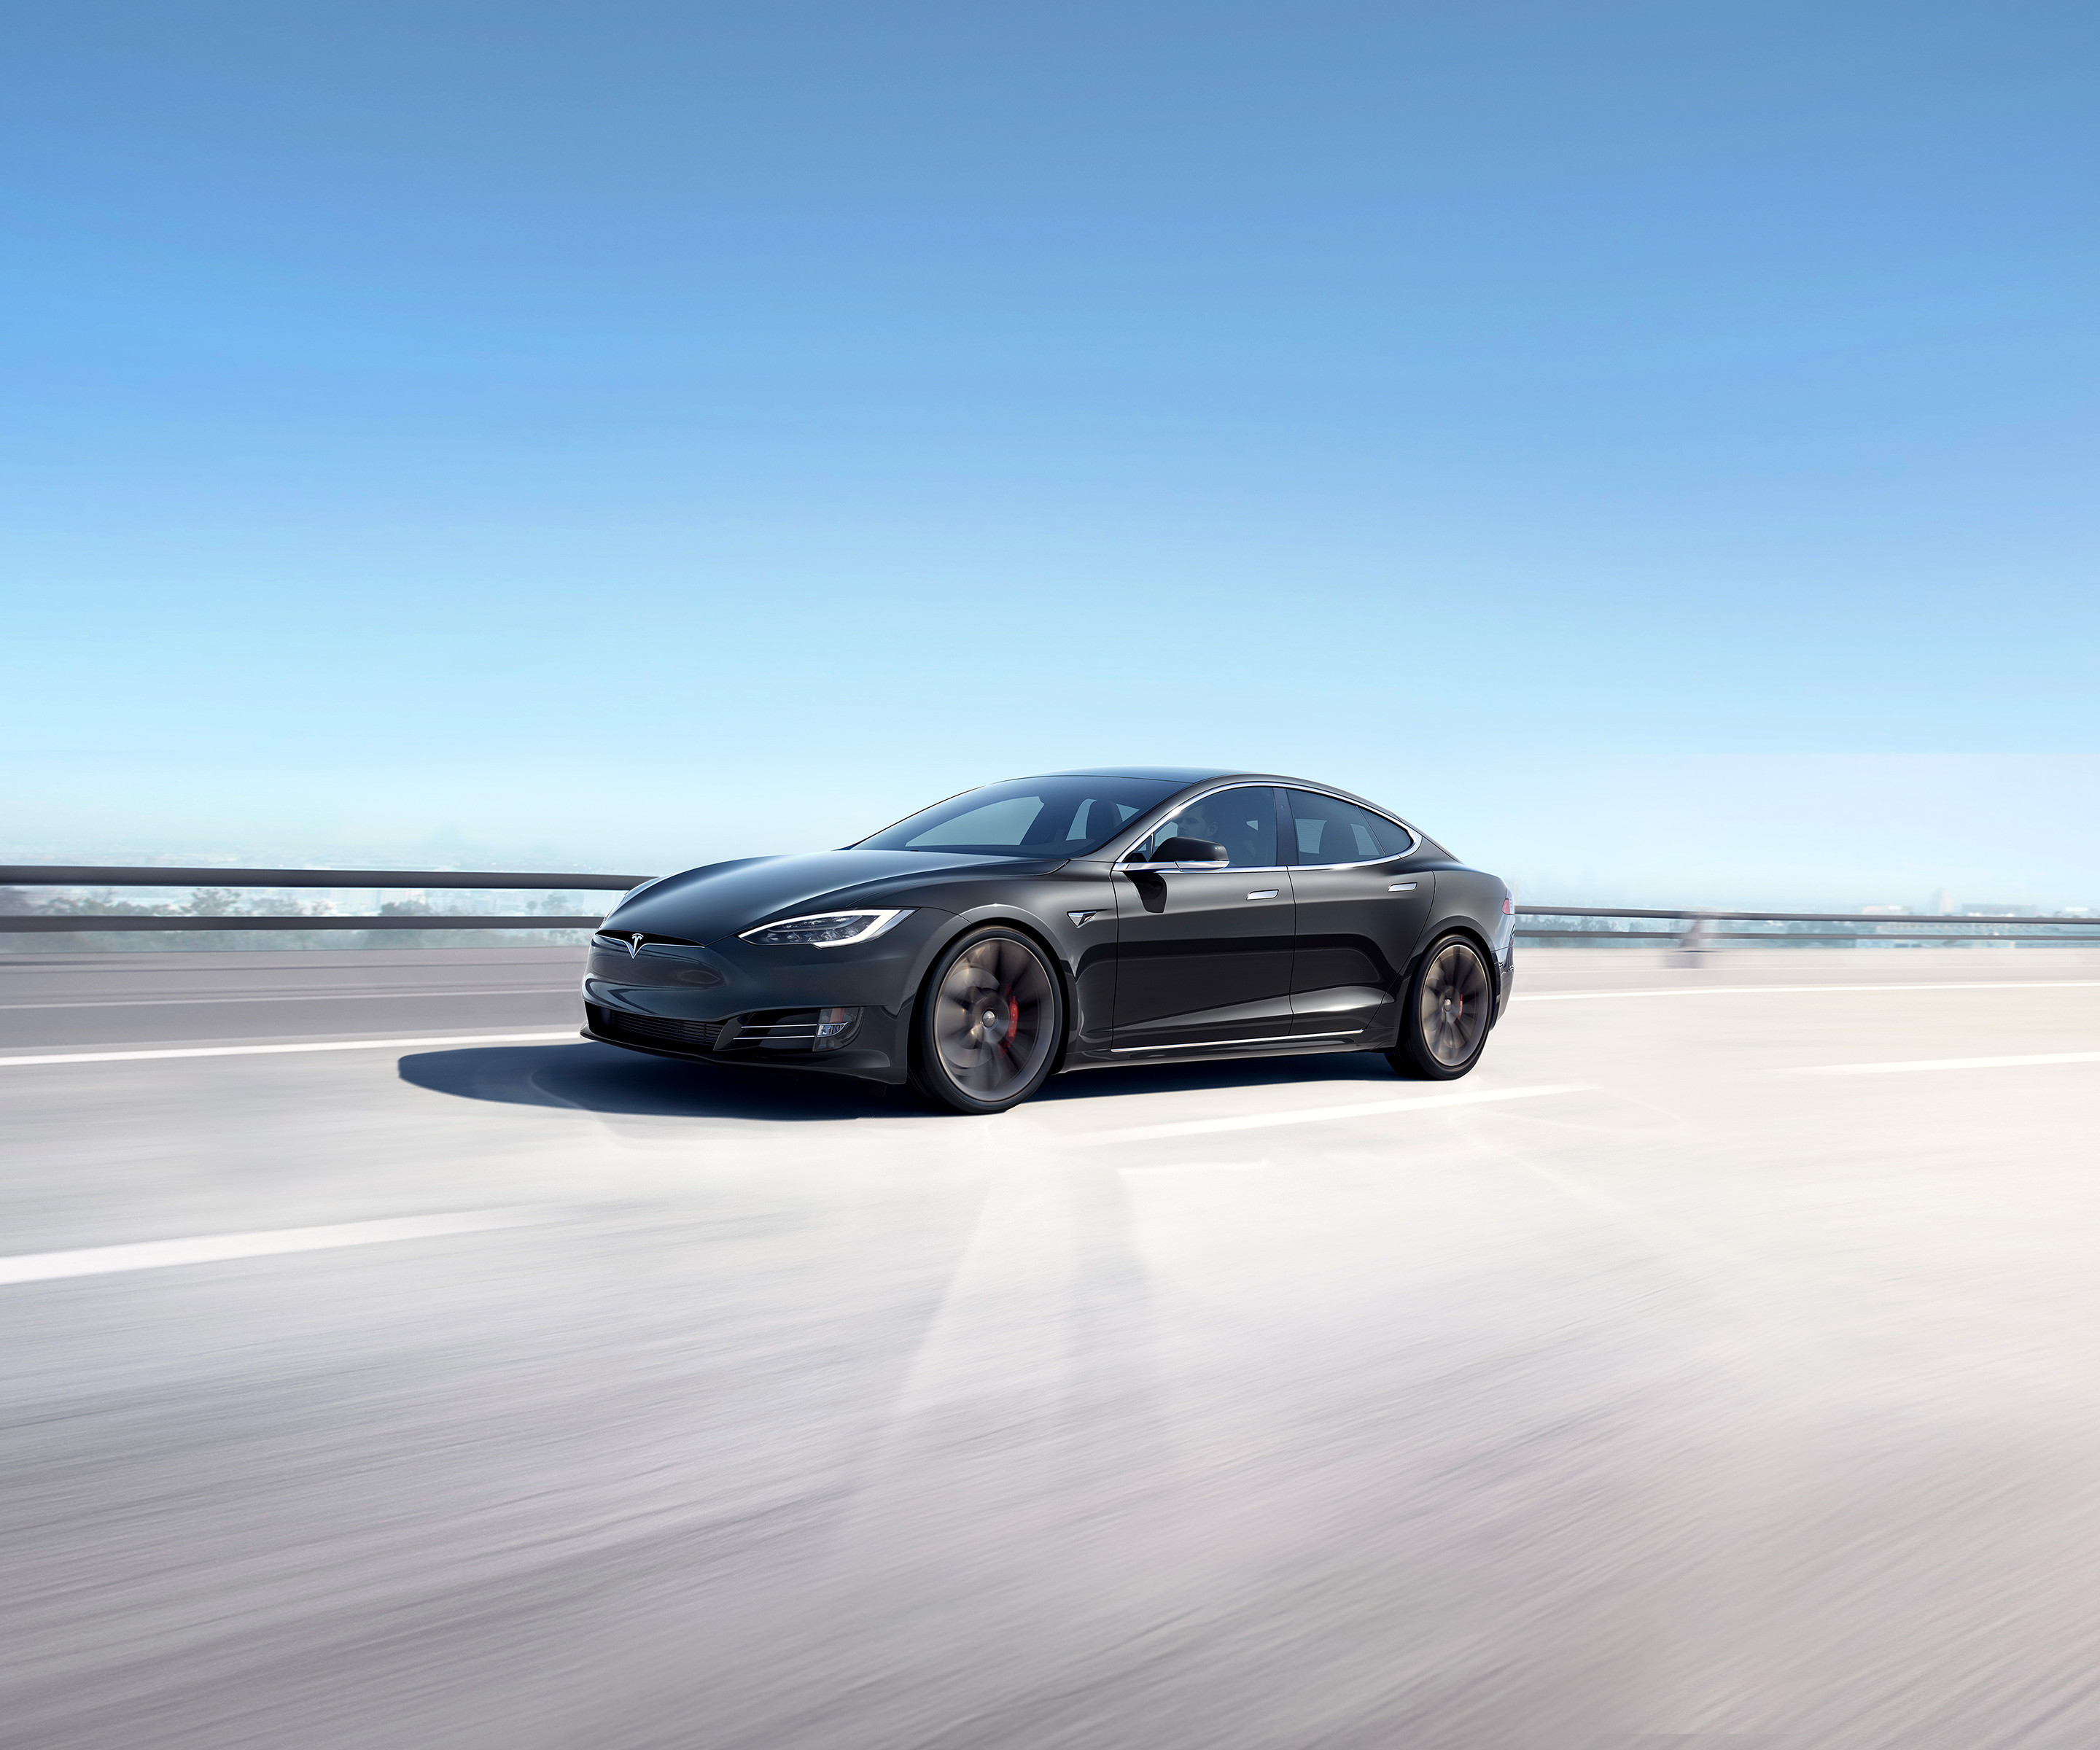 Solid black Model S accelerating on an elevated highway